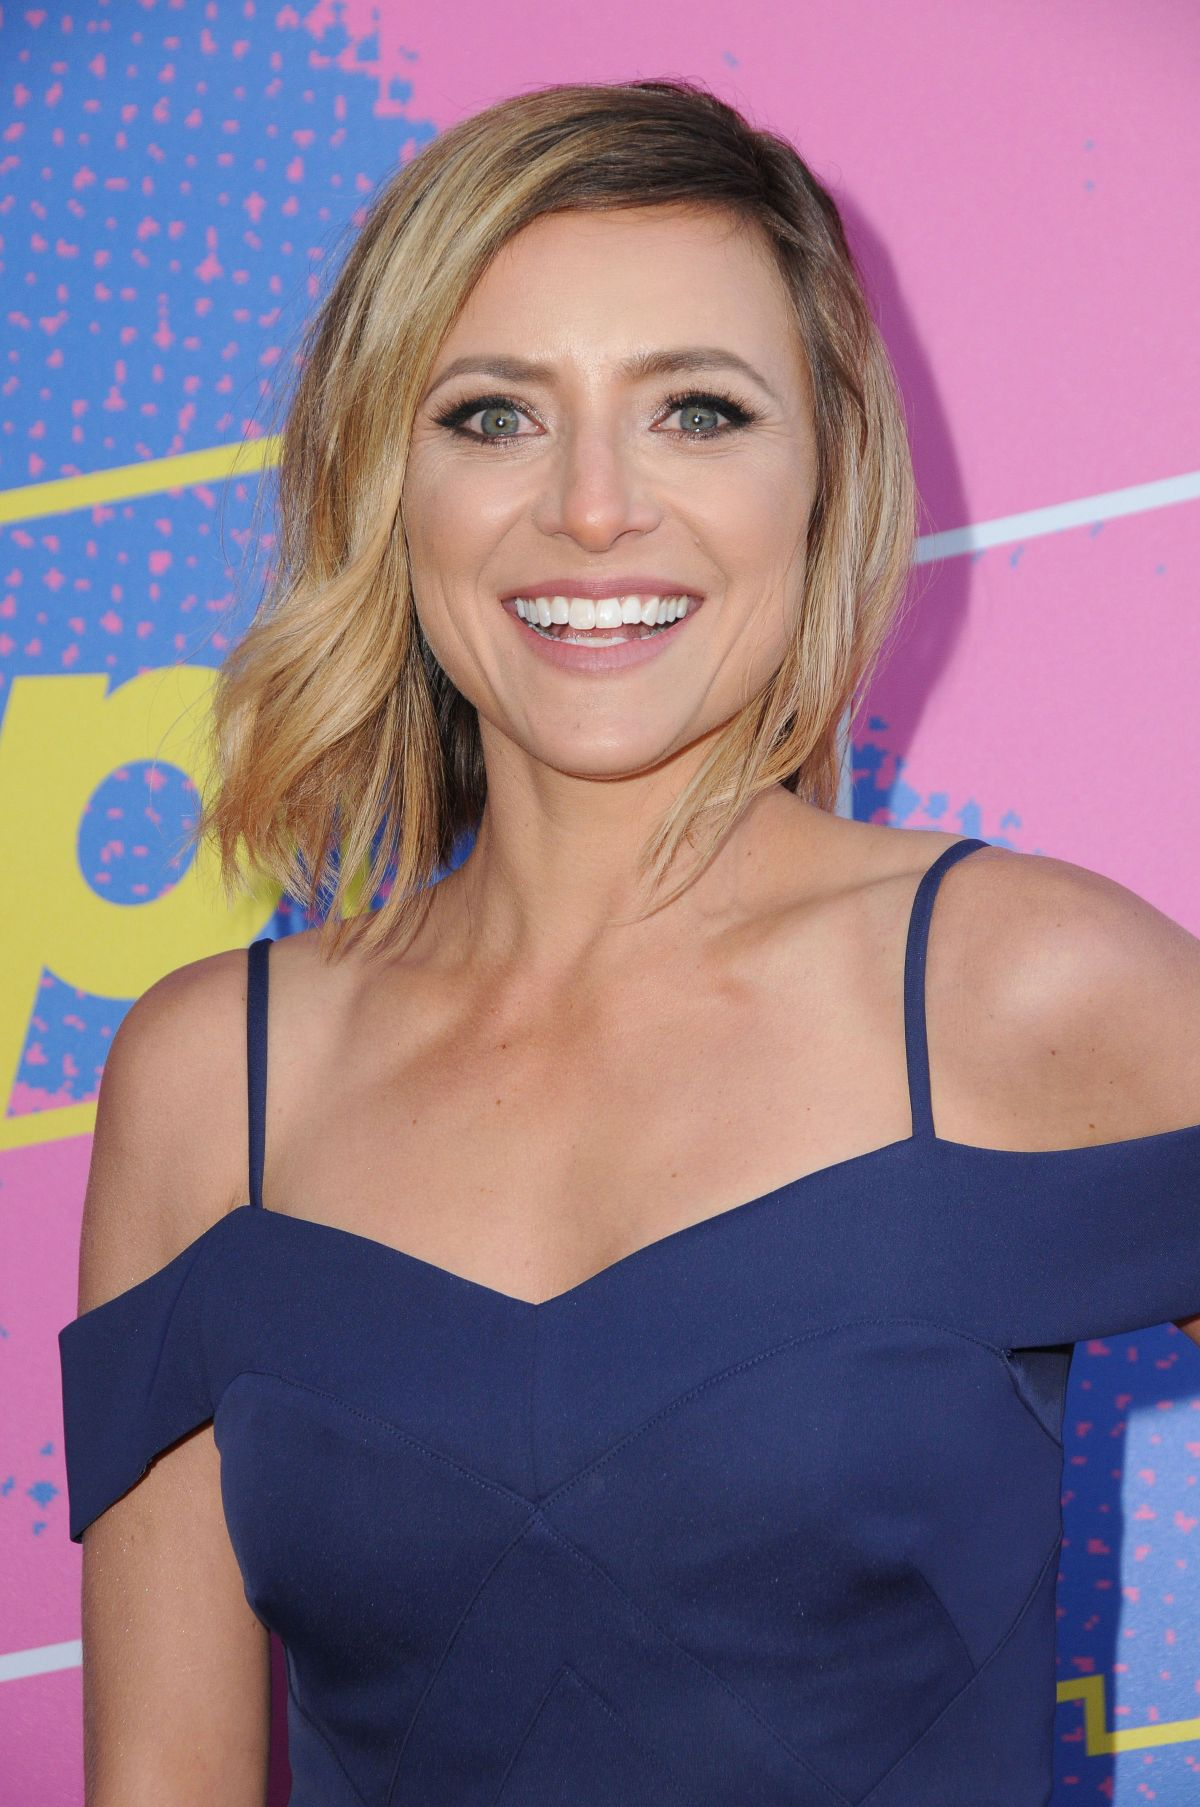 christine-lakin-at-hollywood-darlings-and-return-of-the-mac-premiere-in-los-angeles-_1.jpg